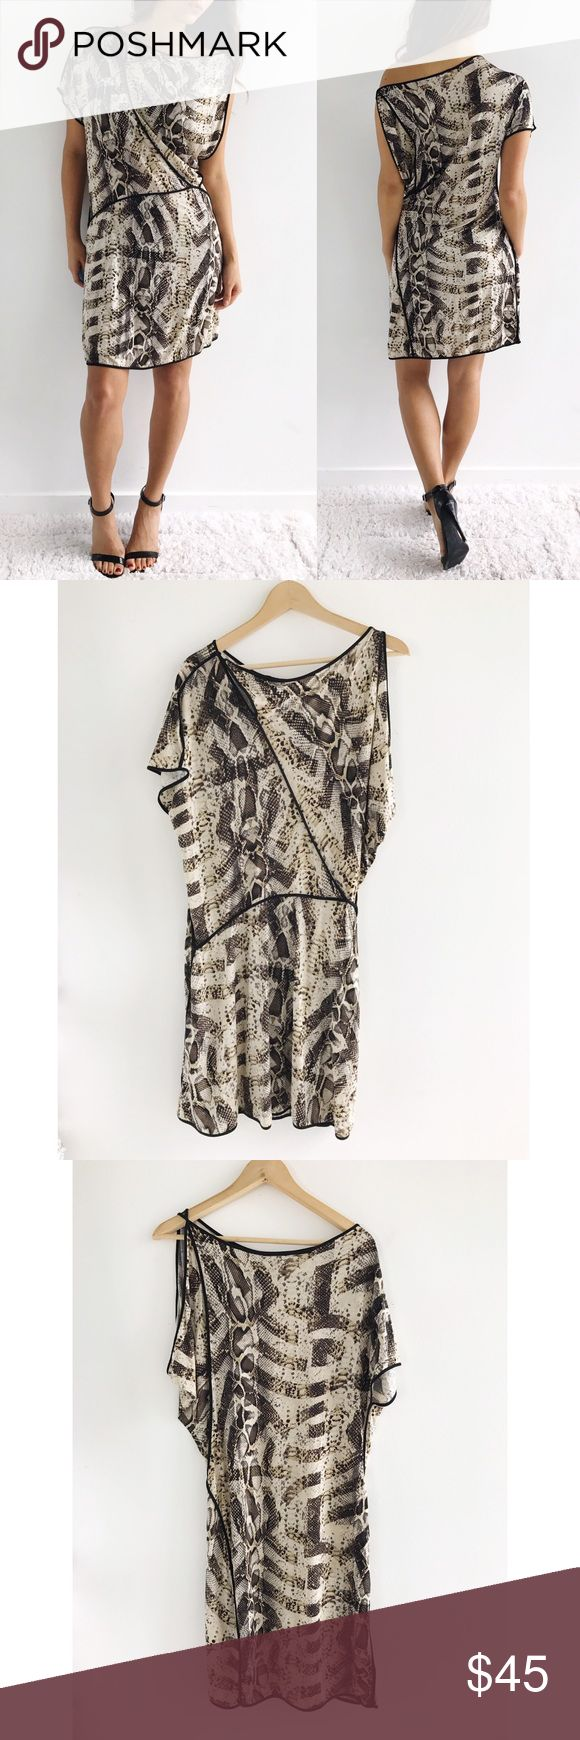 "BCBGMAXAZRIA Snake Print Dress BCBGMAXAZRIA Snake Print Dress! Excellent condition. Relaxed fit. Pull over. Super stretchy. Rayon, spandex blend. Button detail on neckline. Snake print. draped sleeves. Chest-36"" waist-30"" hips-38"" length-35.5"" size small. (Model size 4) BCBG Dresses Midi"